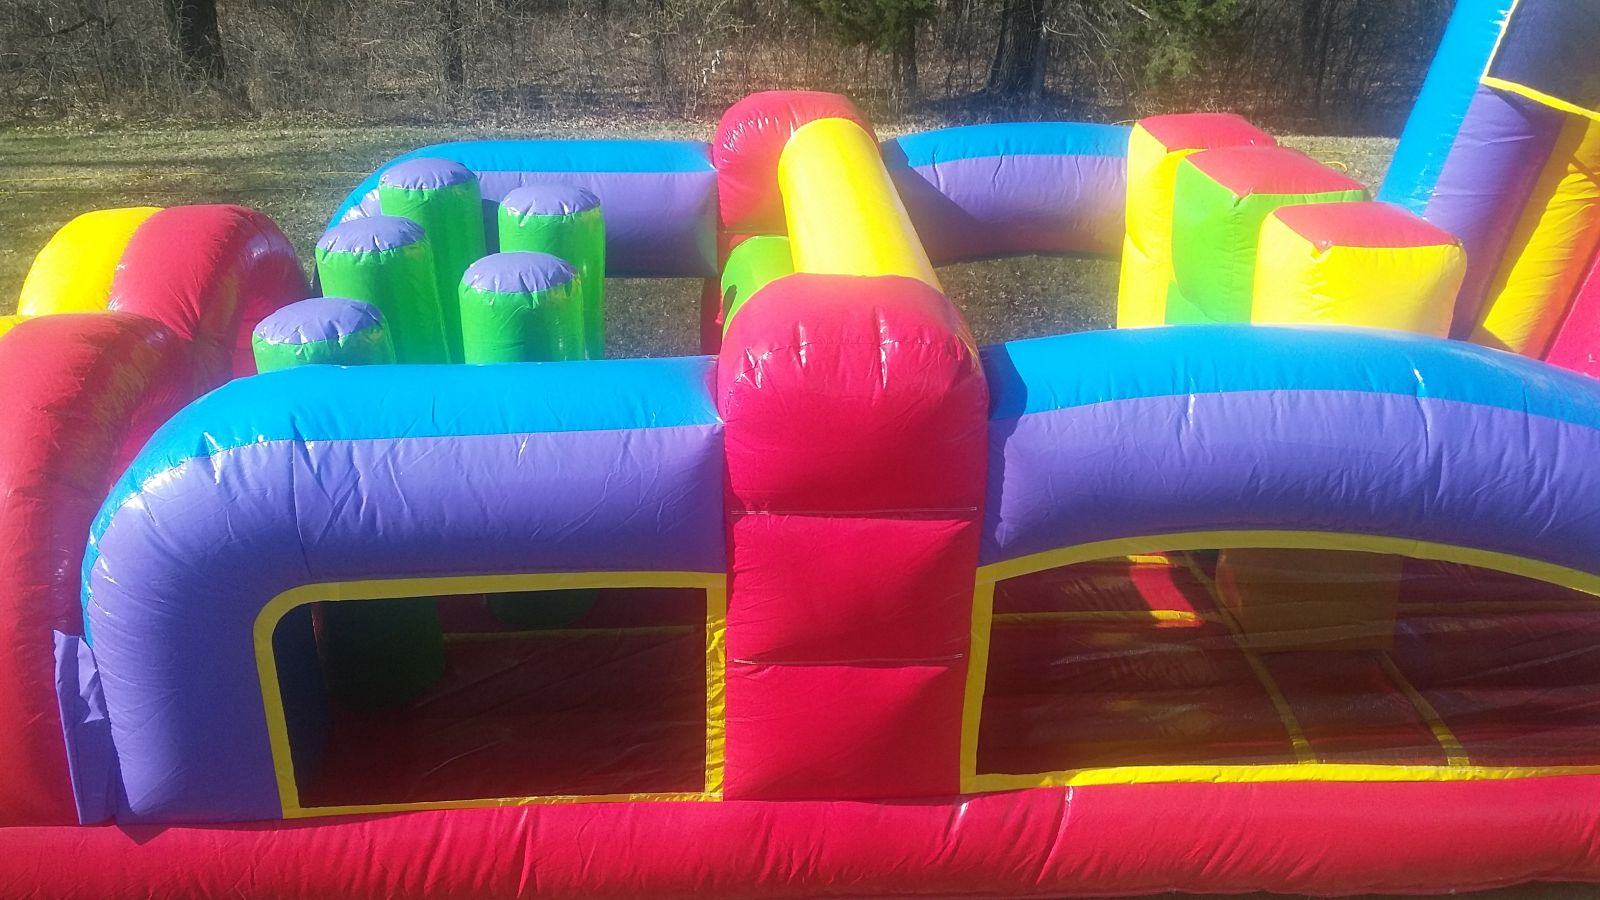 Sideview of inflatable obstacles within the 68' Conquer Obstacle Course Bounce House